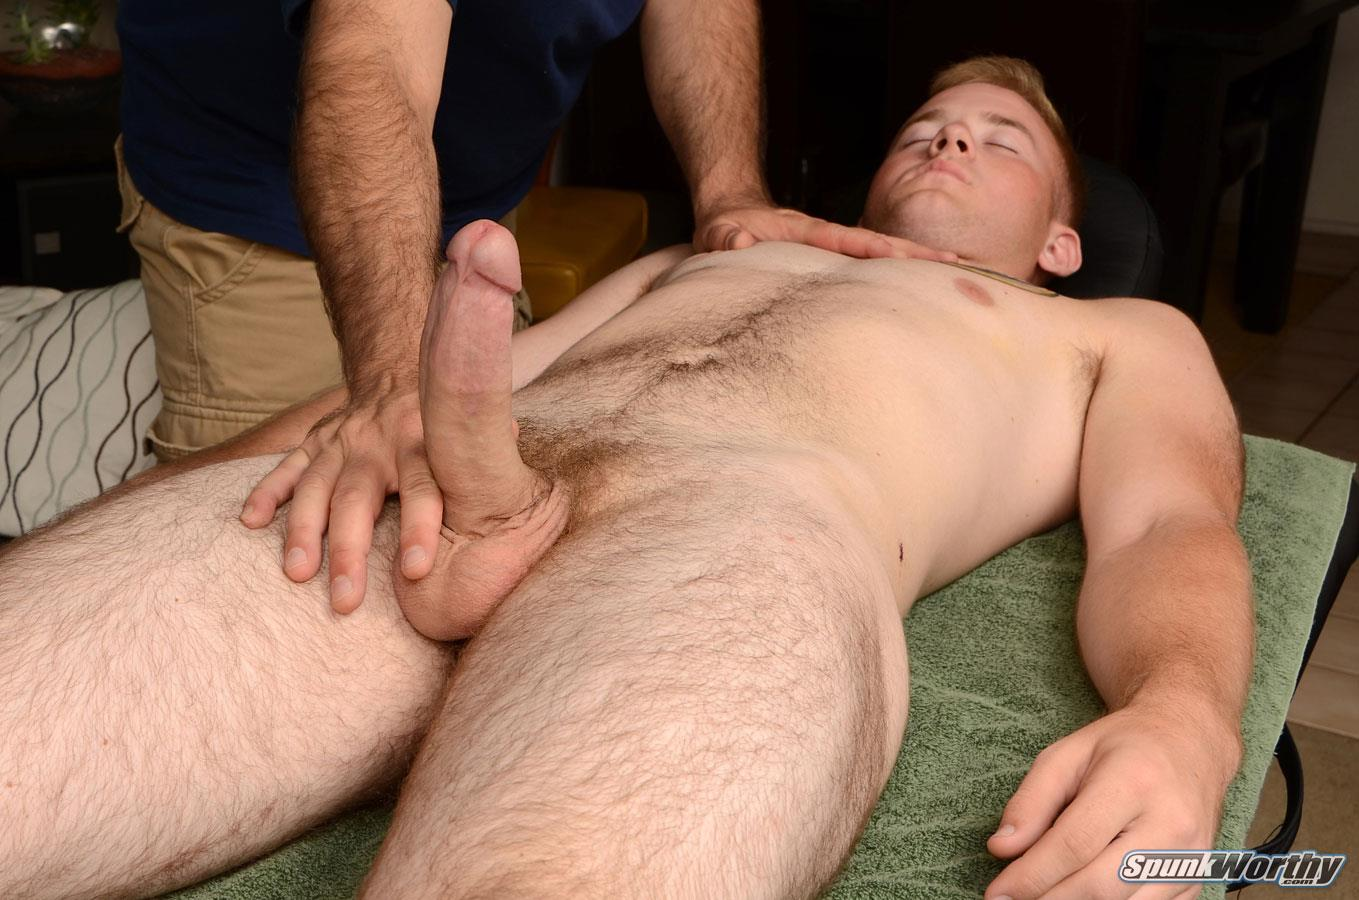 Mature Guy And Twink Blowjob And Rimming Action